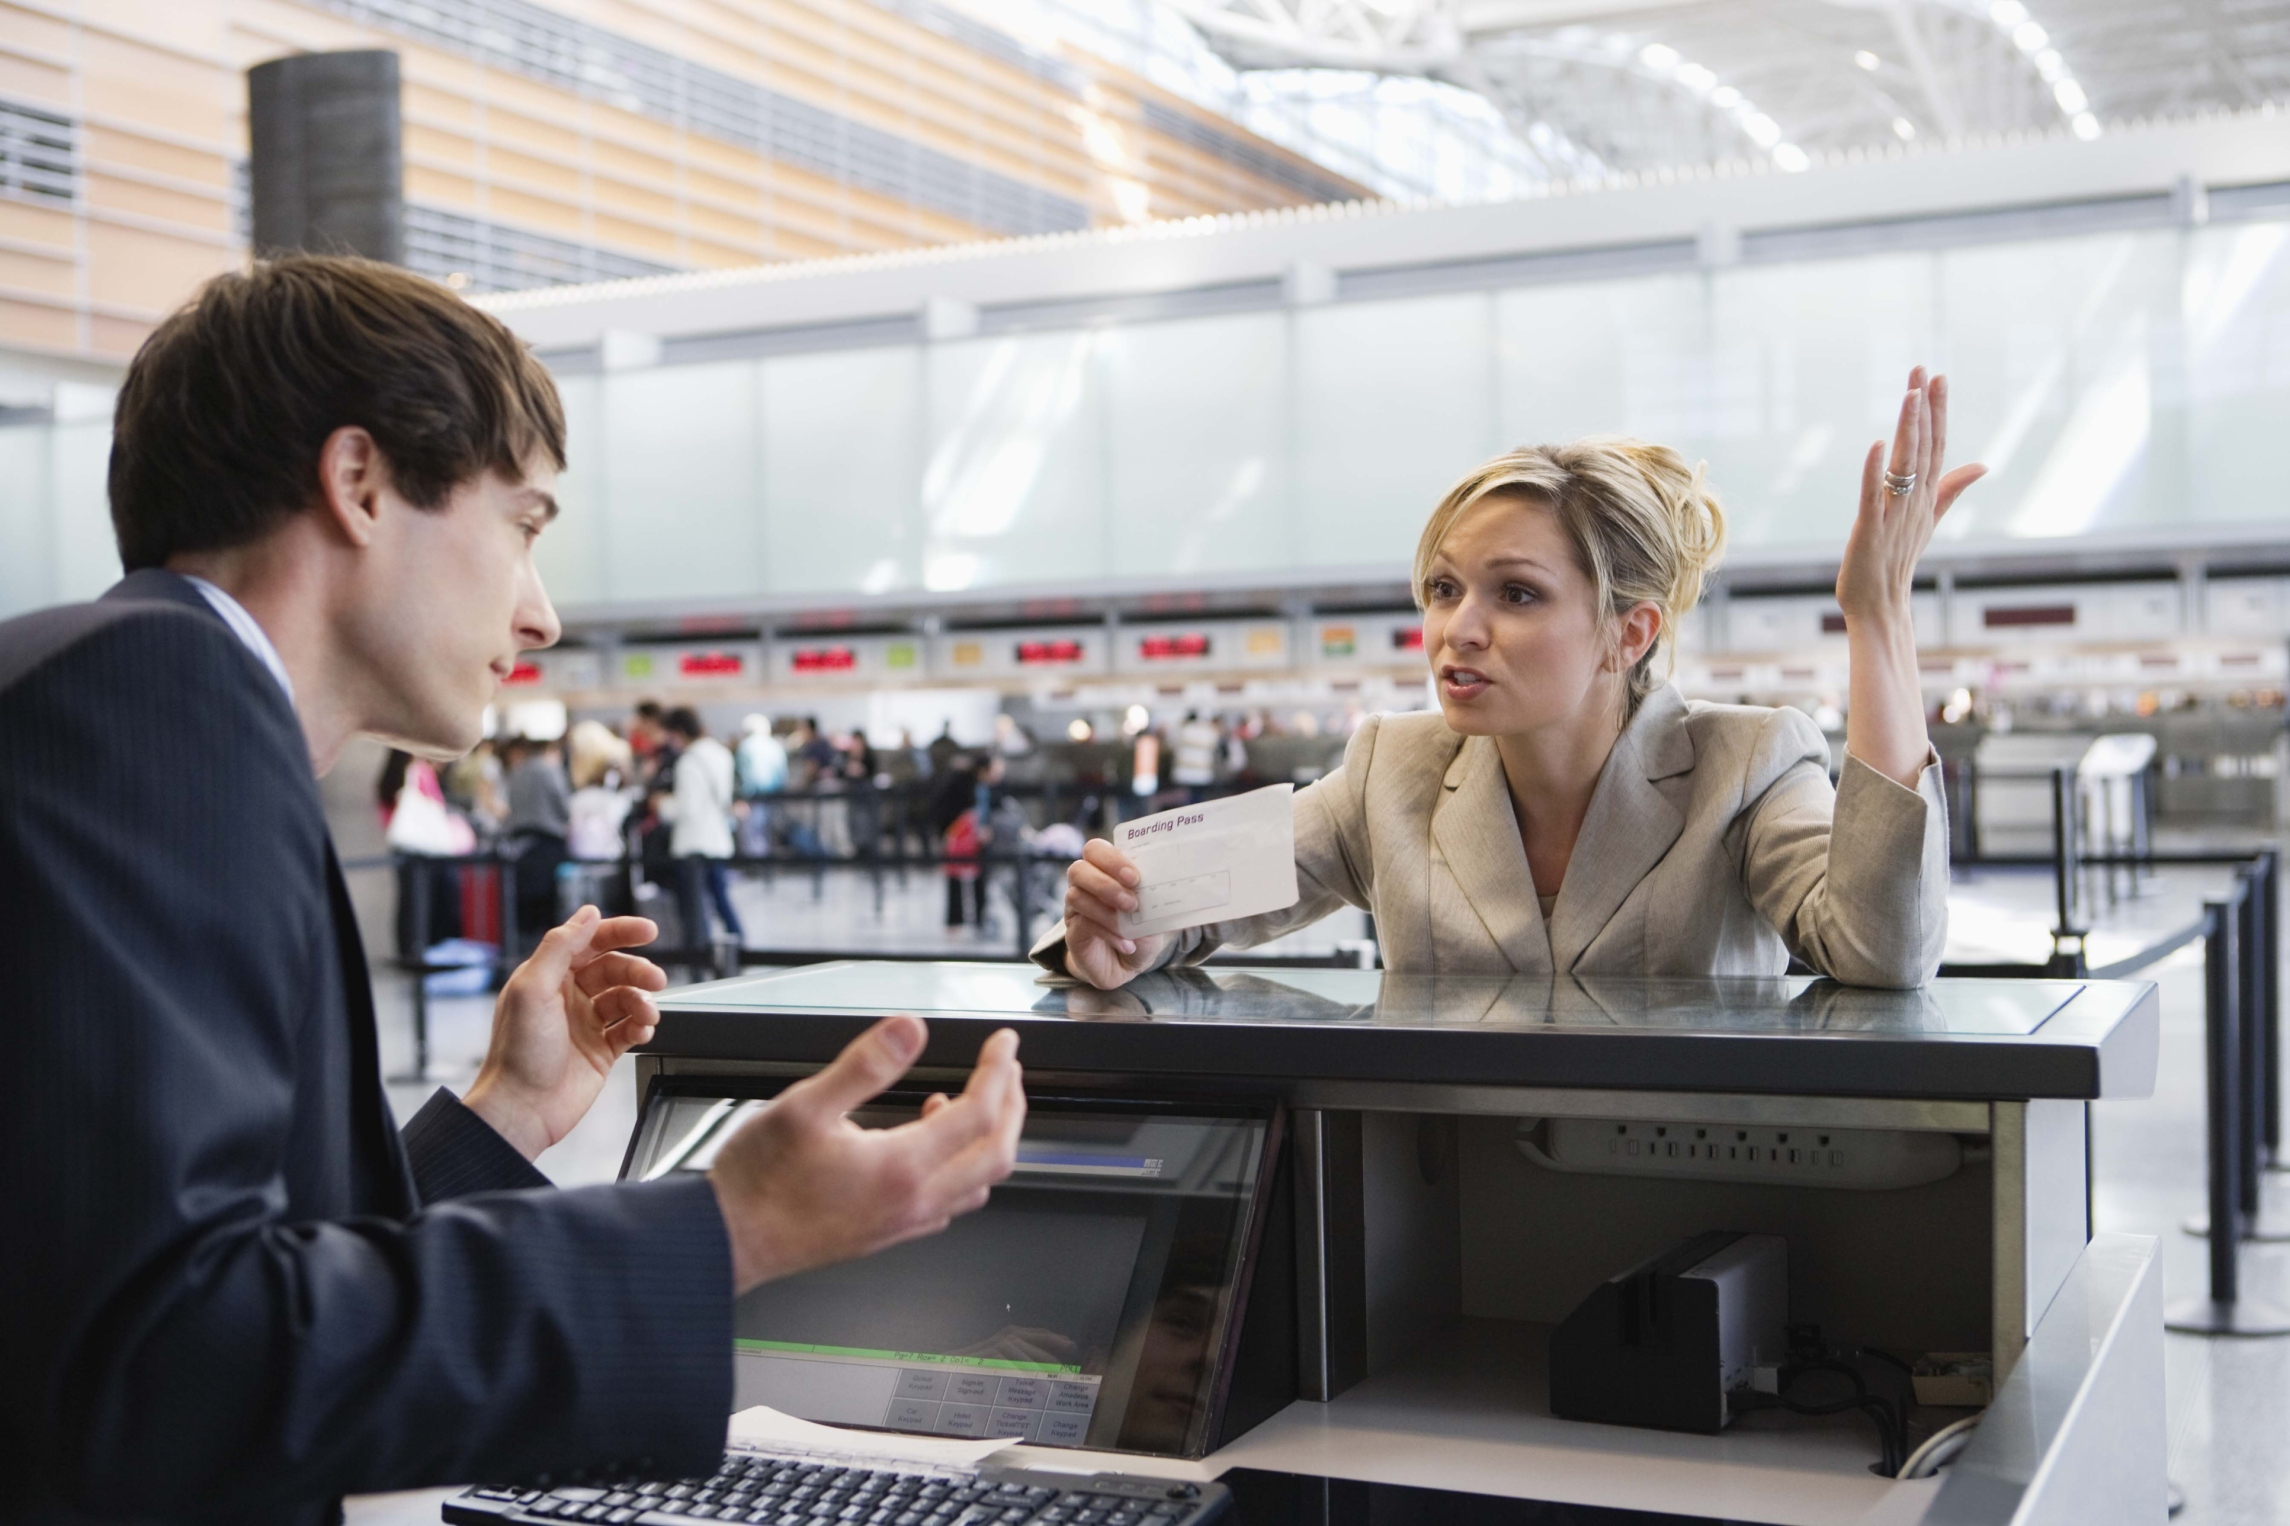 How Does Poor Customer Service Affect a Business? | Your